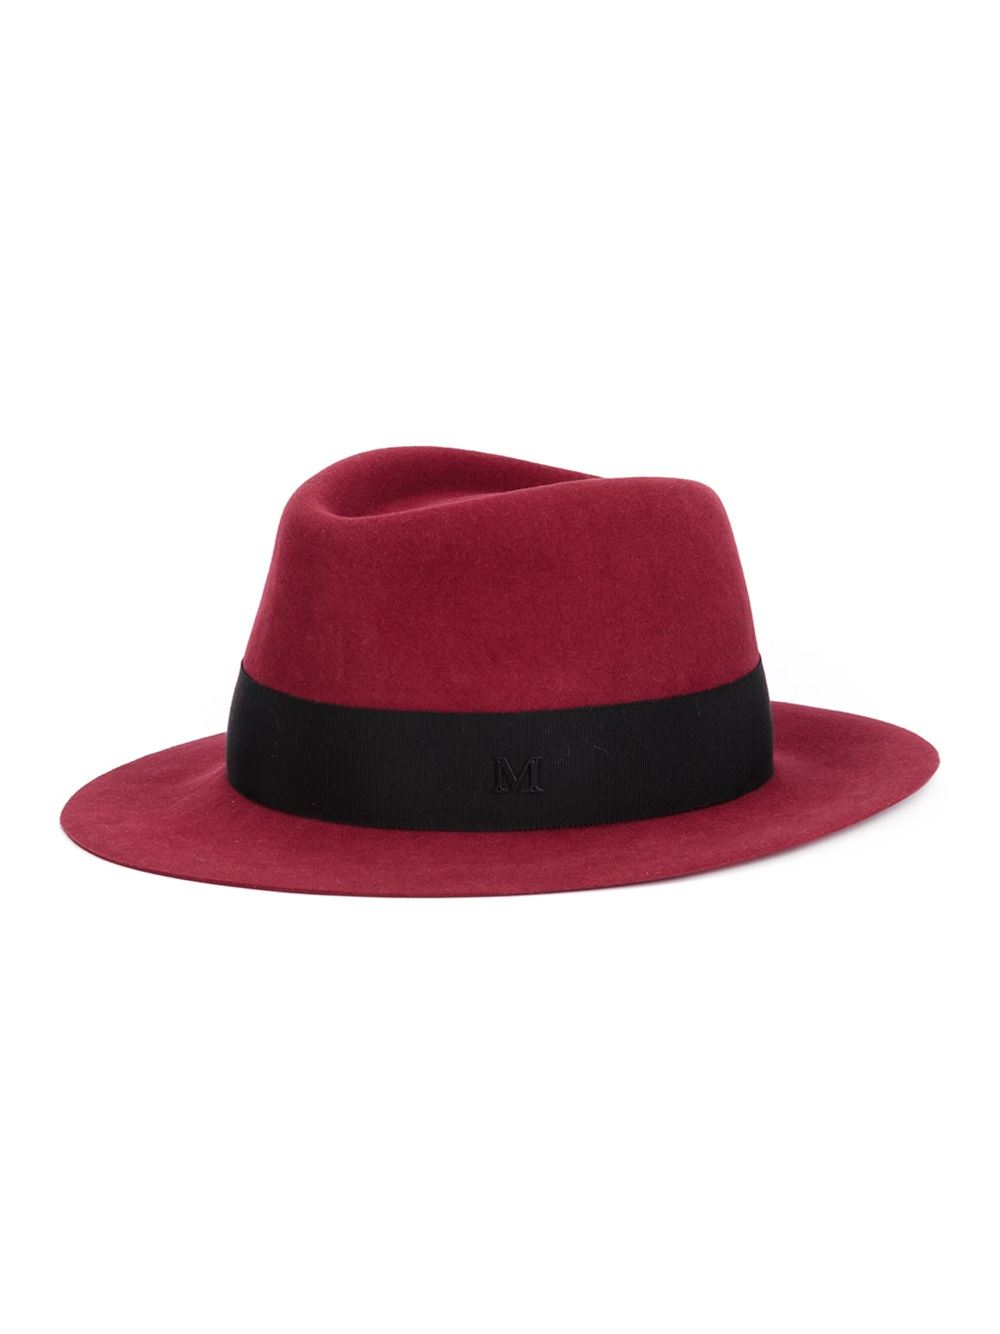 Maison michel 39 andre 39 fedora in red lyst for Maison michel